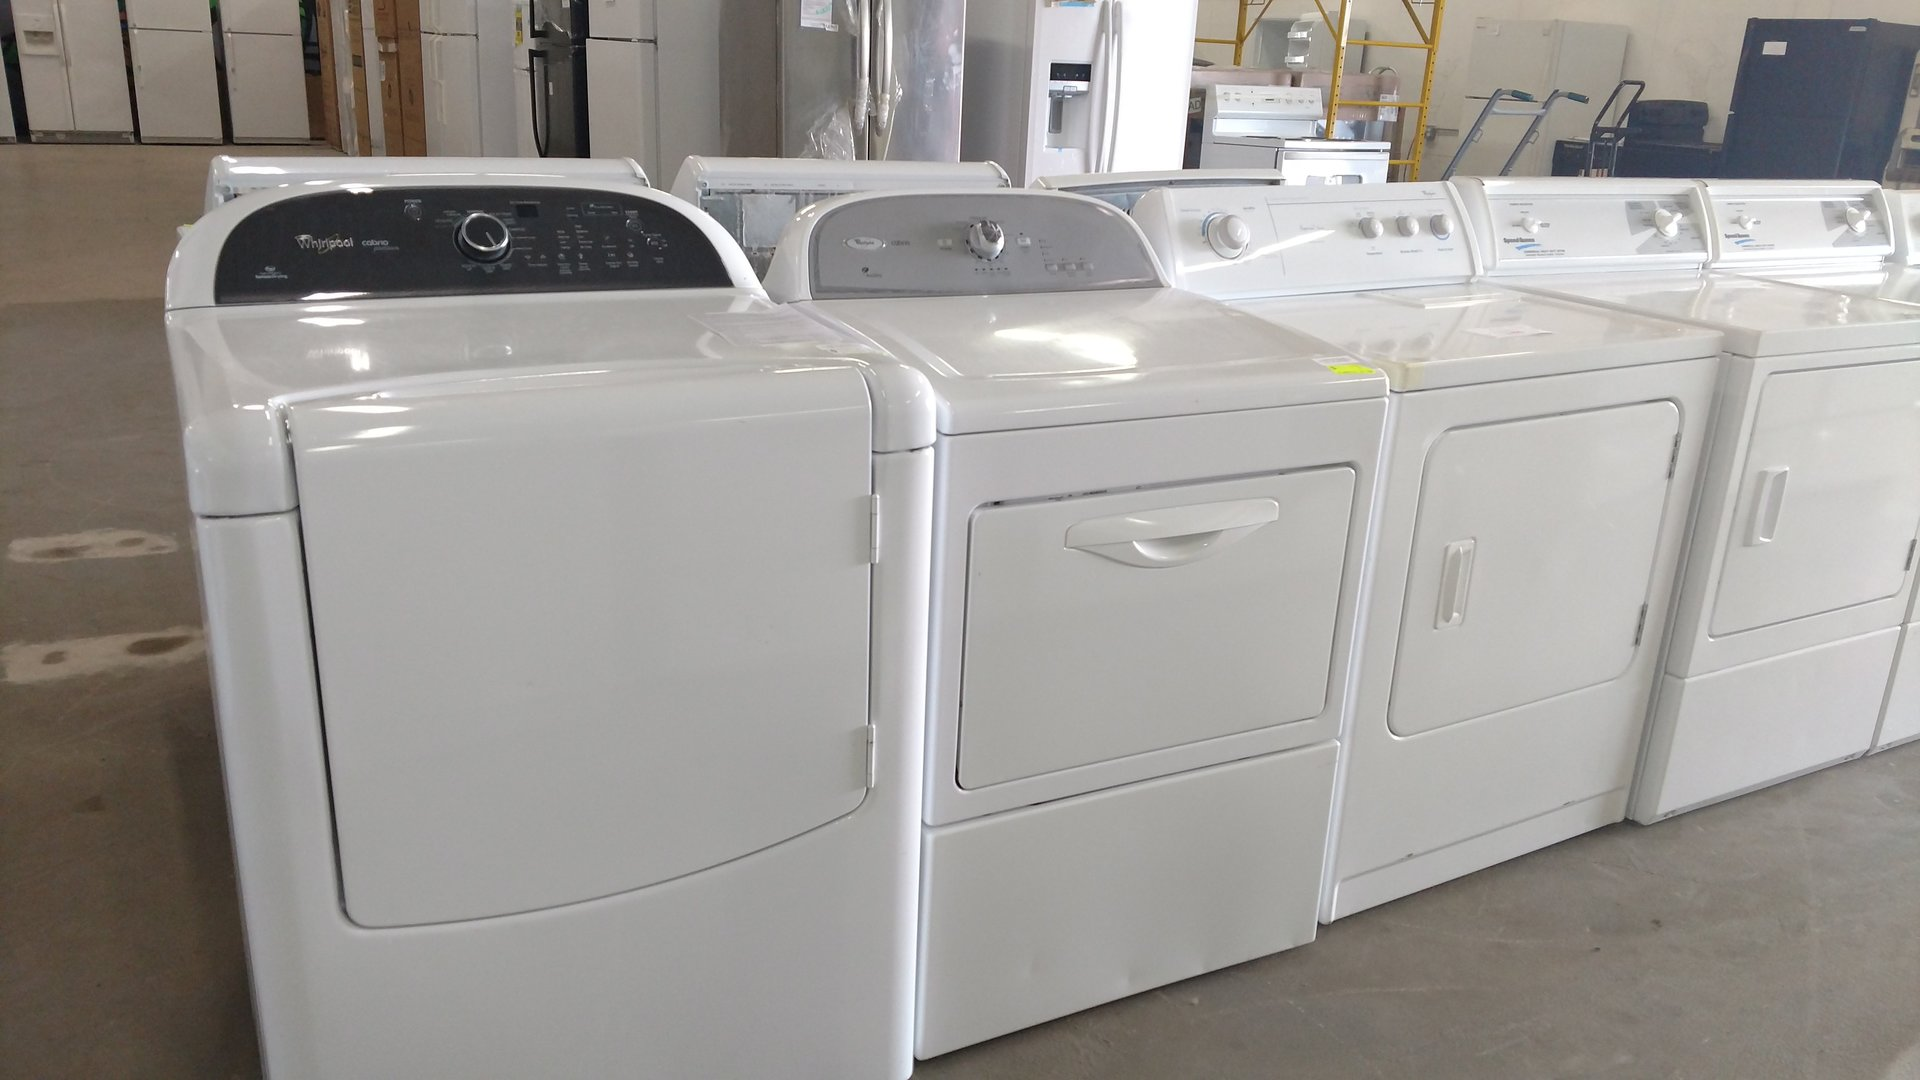 Sample of dryers